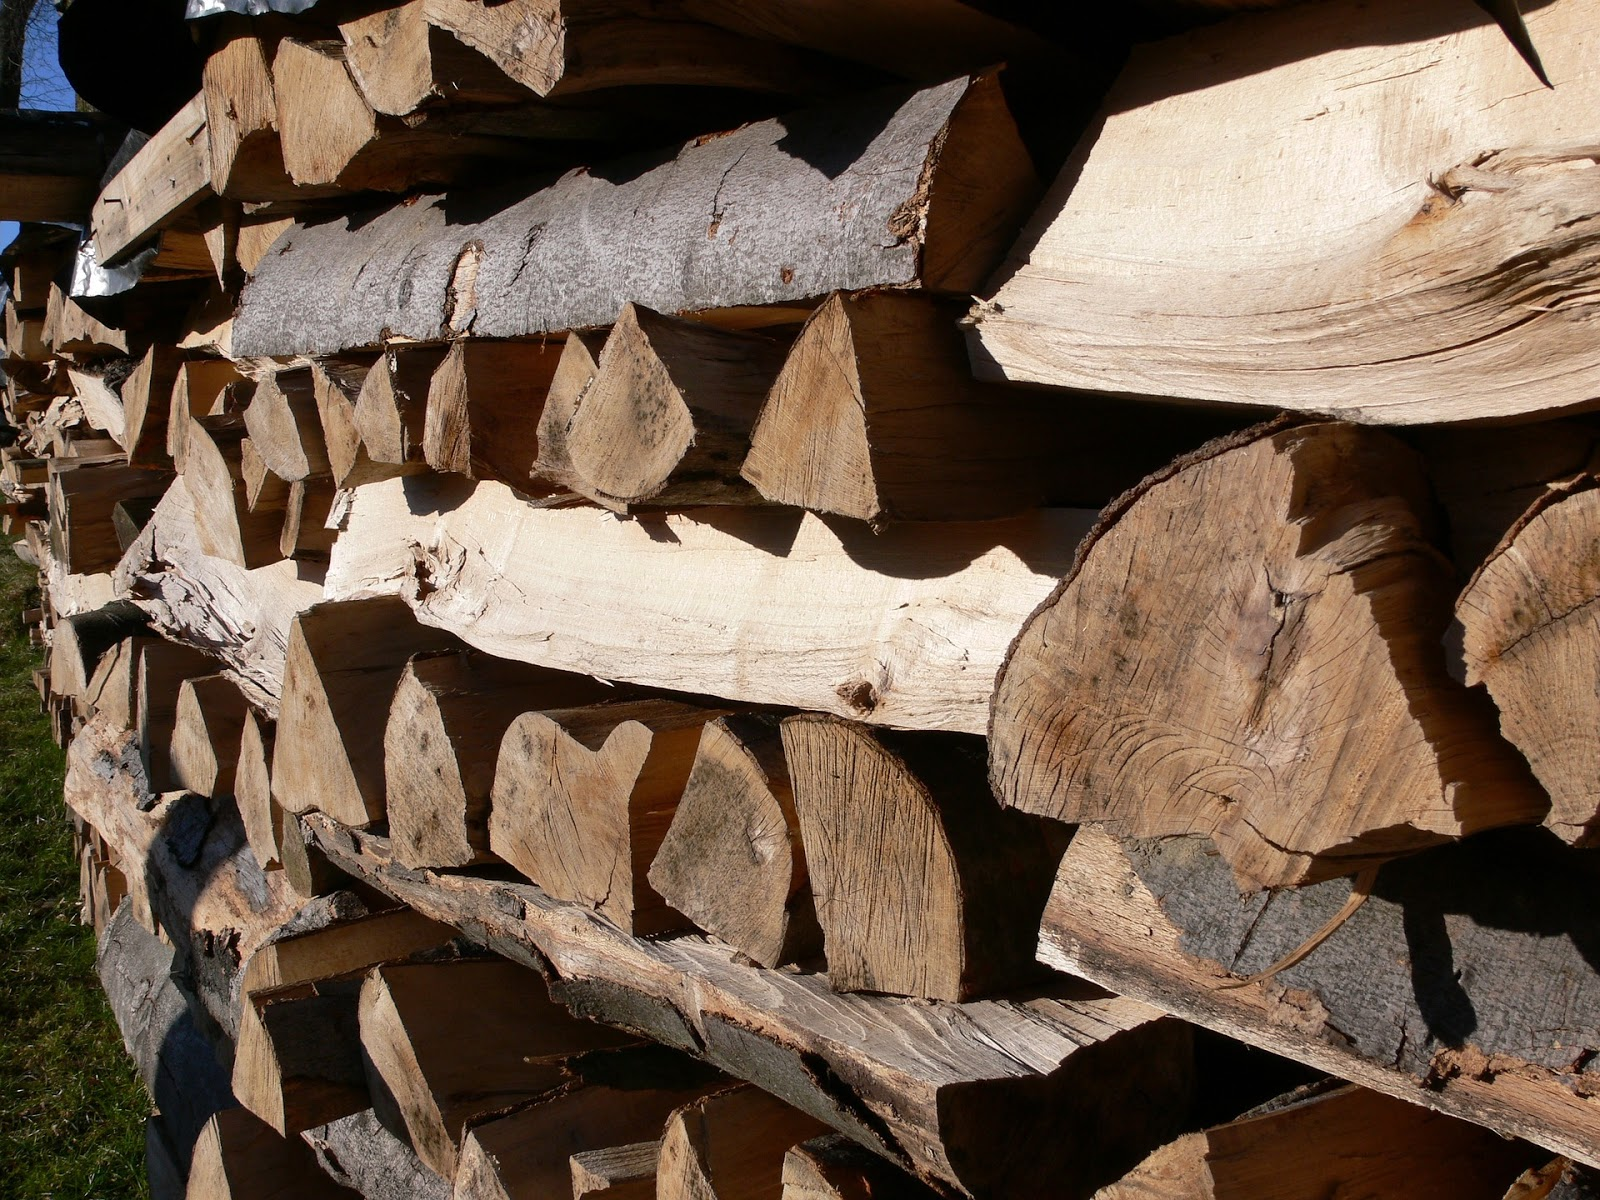 Multi Purpose But Lacking In Practicality, This Versatile Garden Wall  Feature Combines Aesthetics With A Clever Log Store For Open Air Fires.